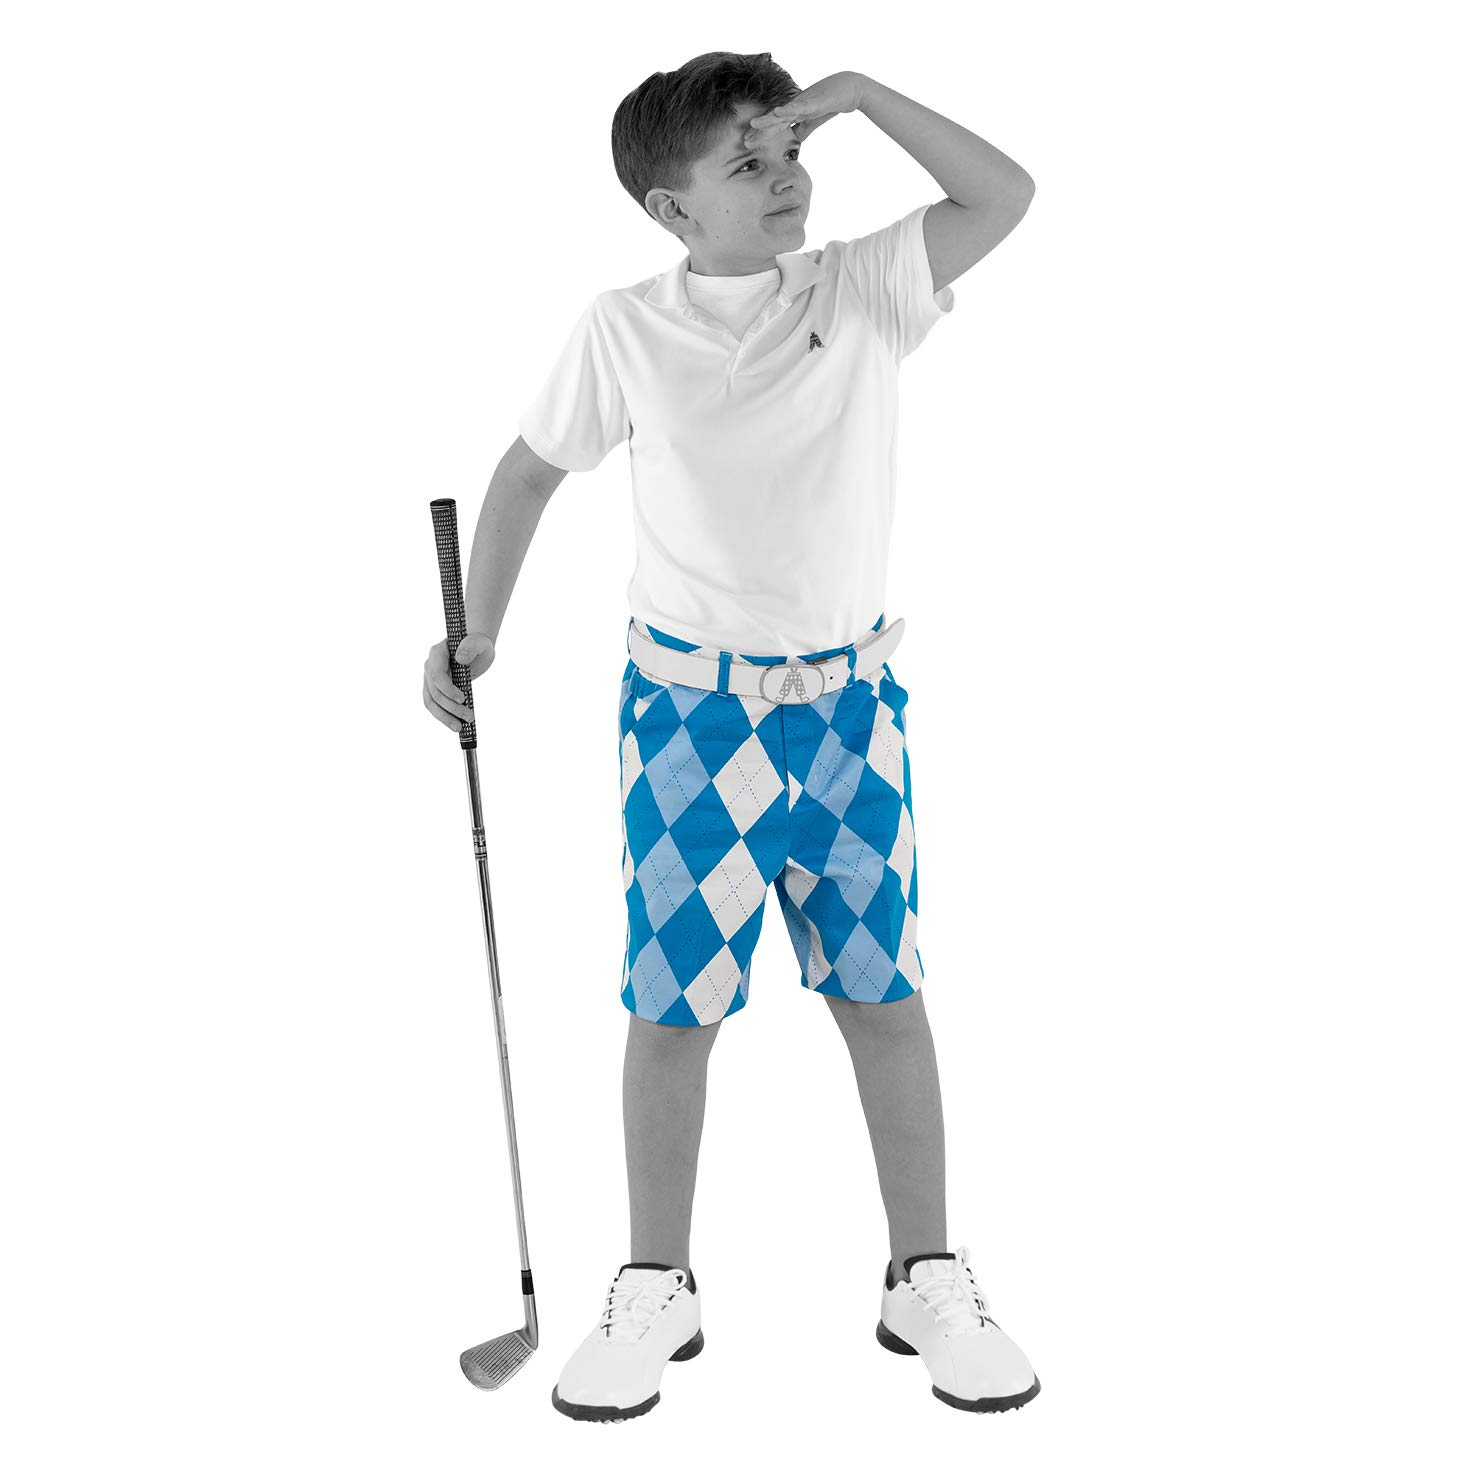 Royal & Awesome Kids Old Tom's Bright Golf Shorts - X-Large Age 14 Years by Royal & Awesome